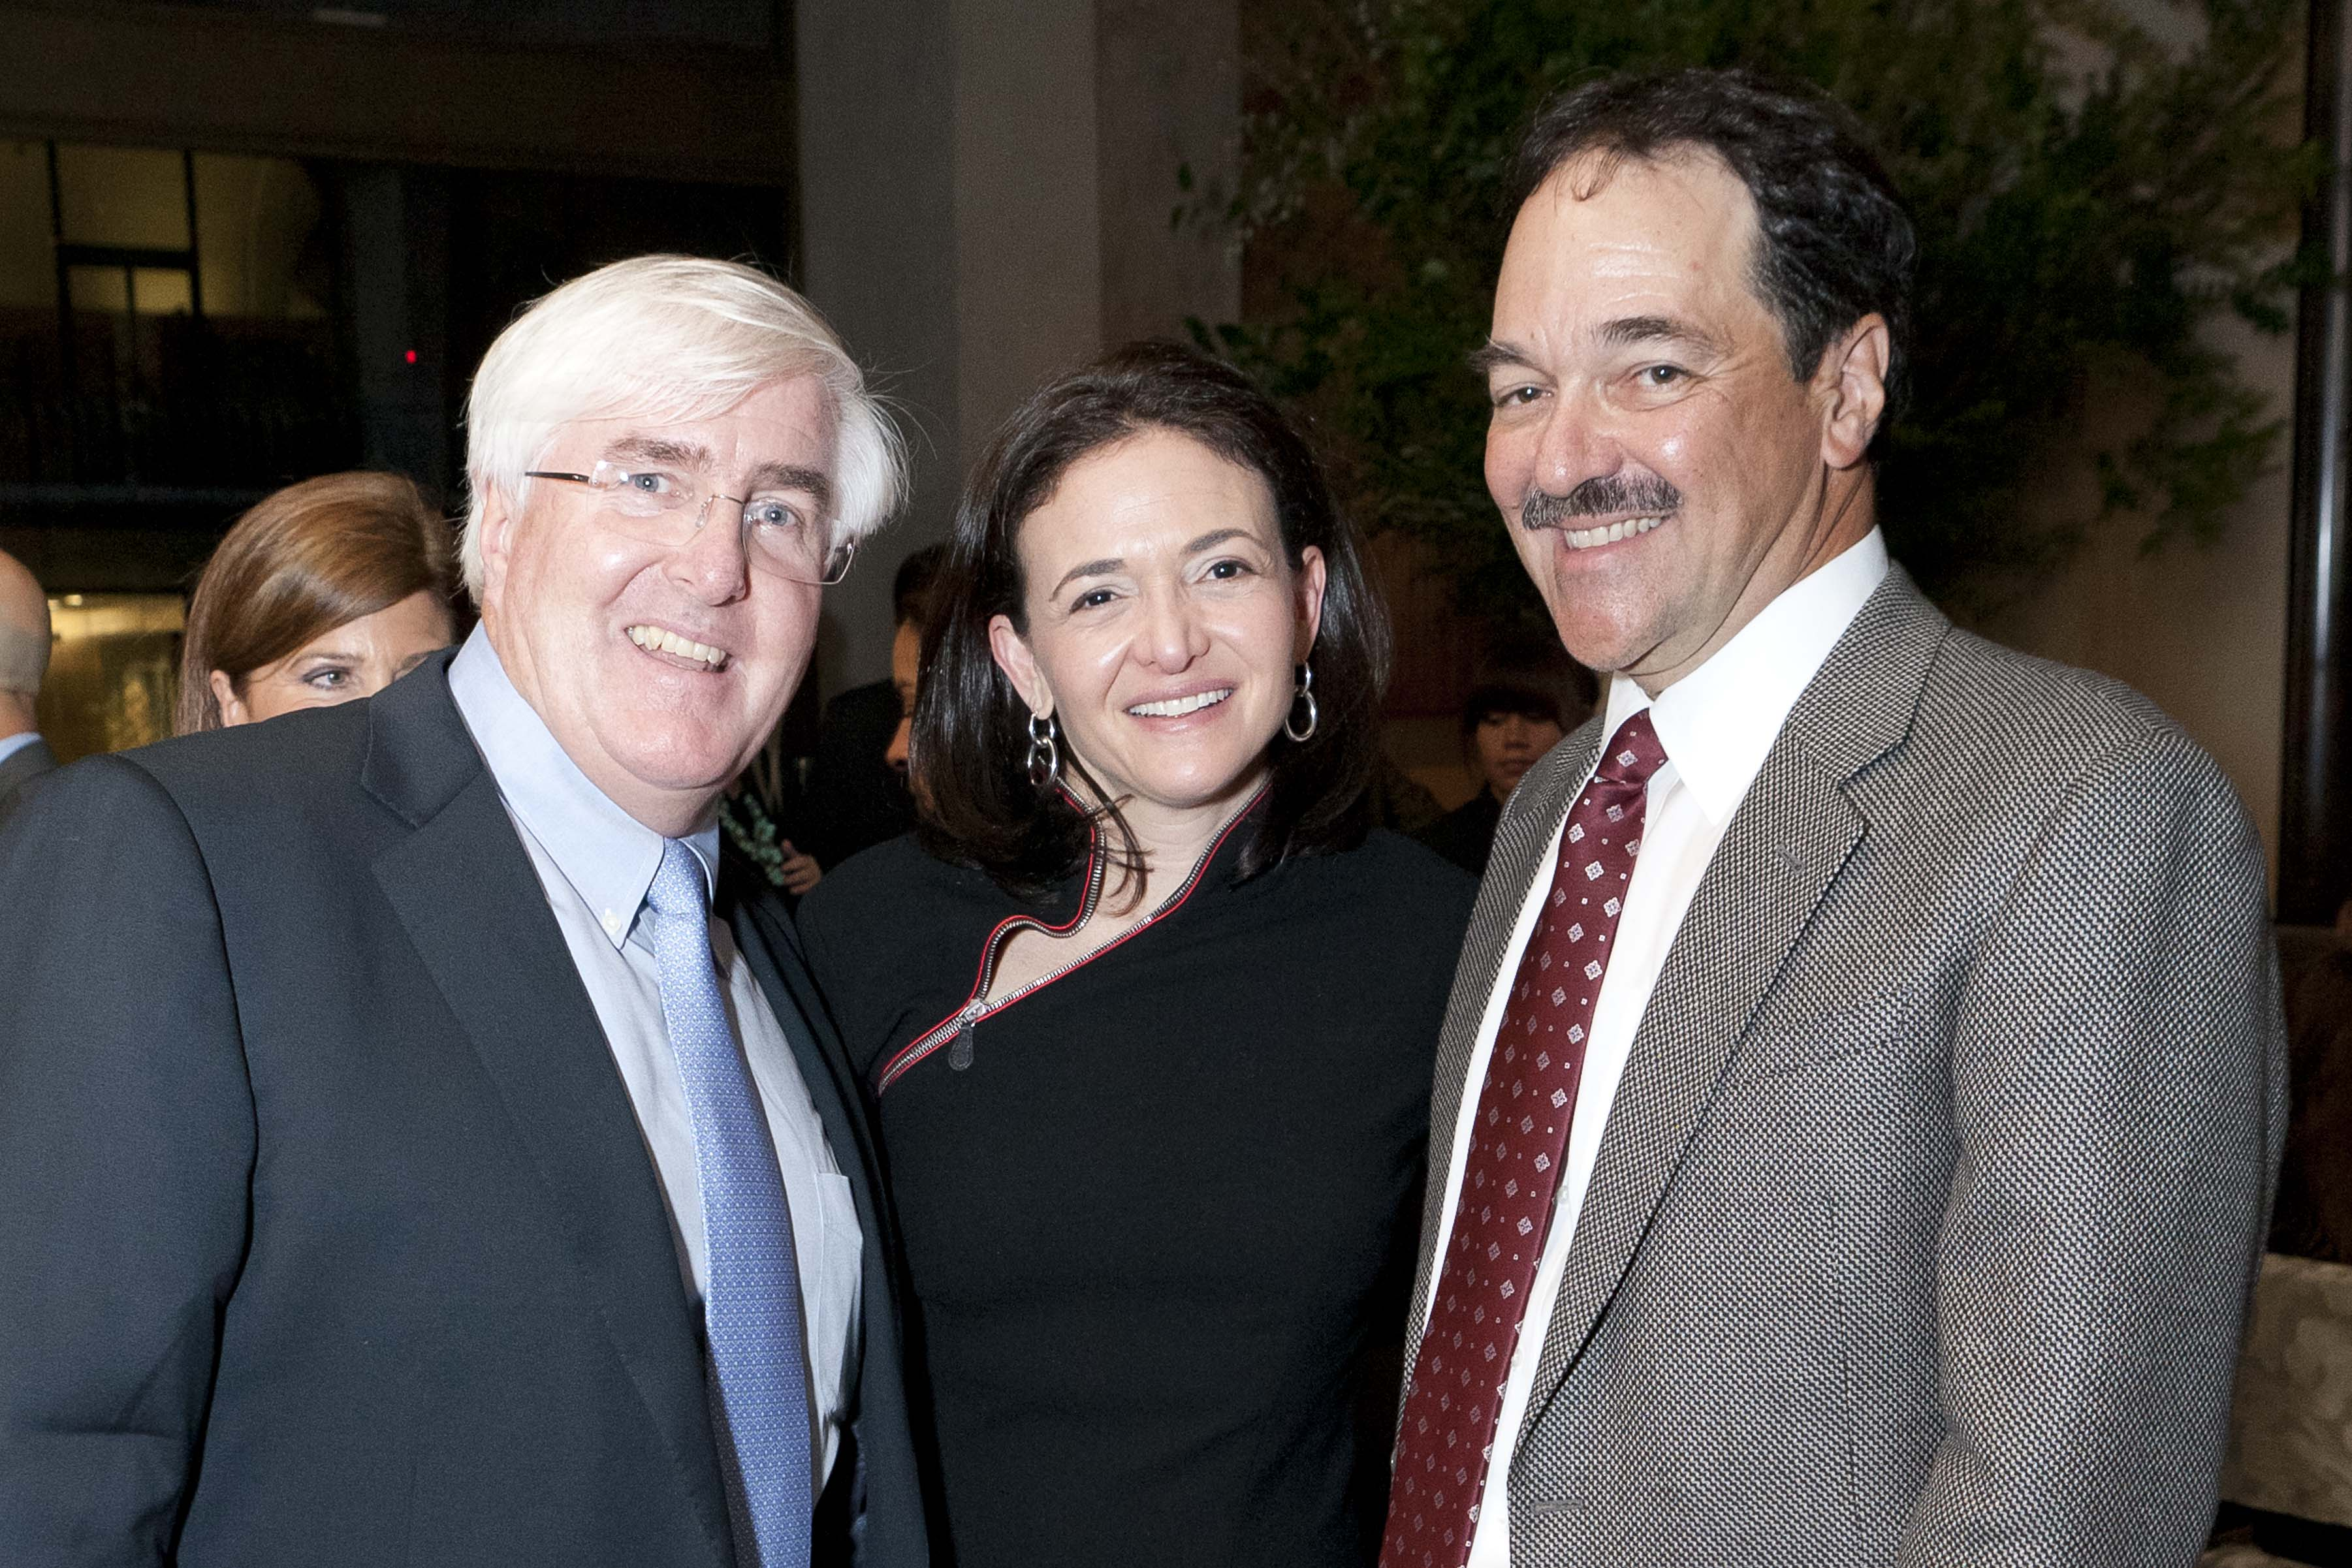 Ron_Conway,_Angel_Investors_LP,_Sheryl_Sandberg,_Facebook,_and_Frank_Quattrone,_Qatalyst_Group_(6147266240)